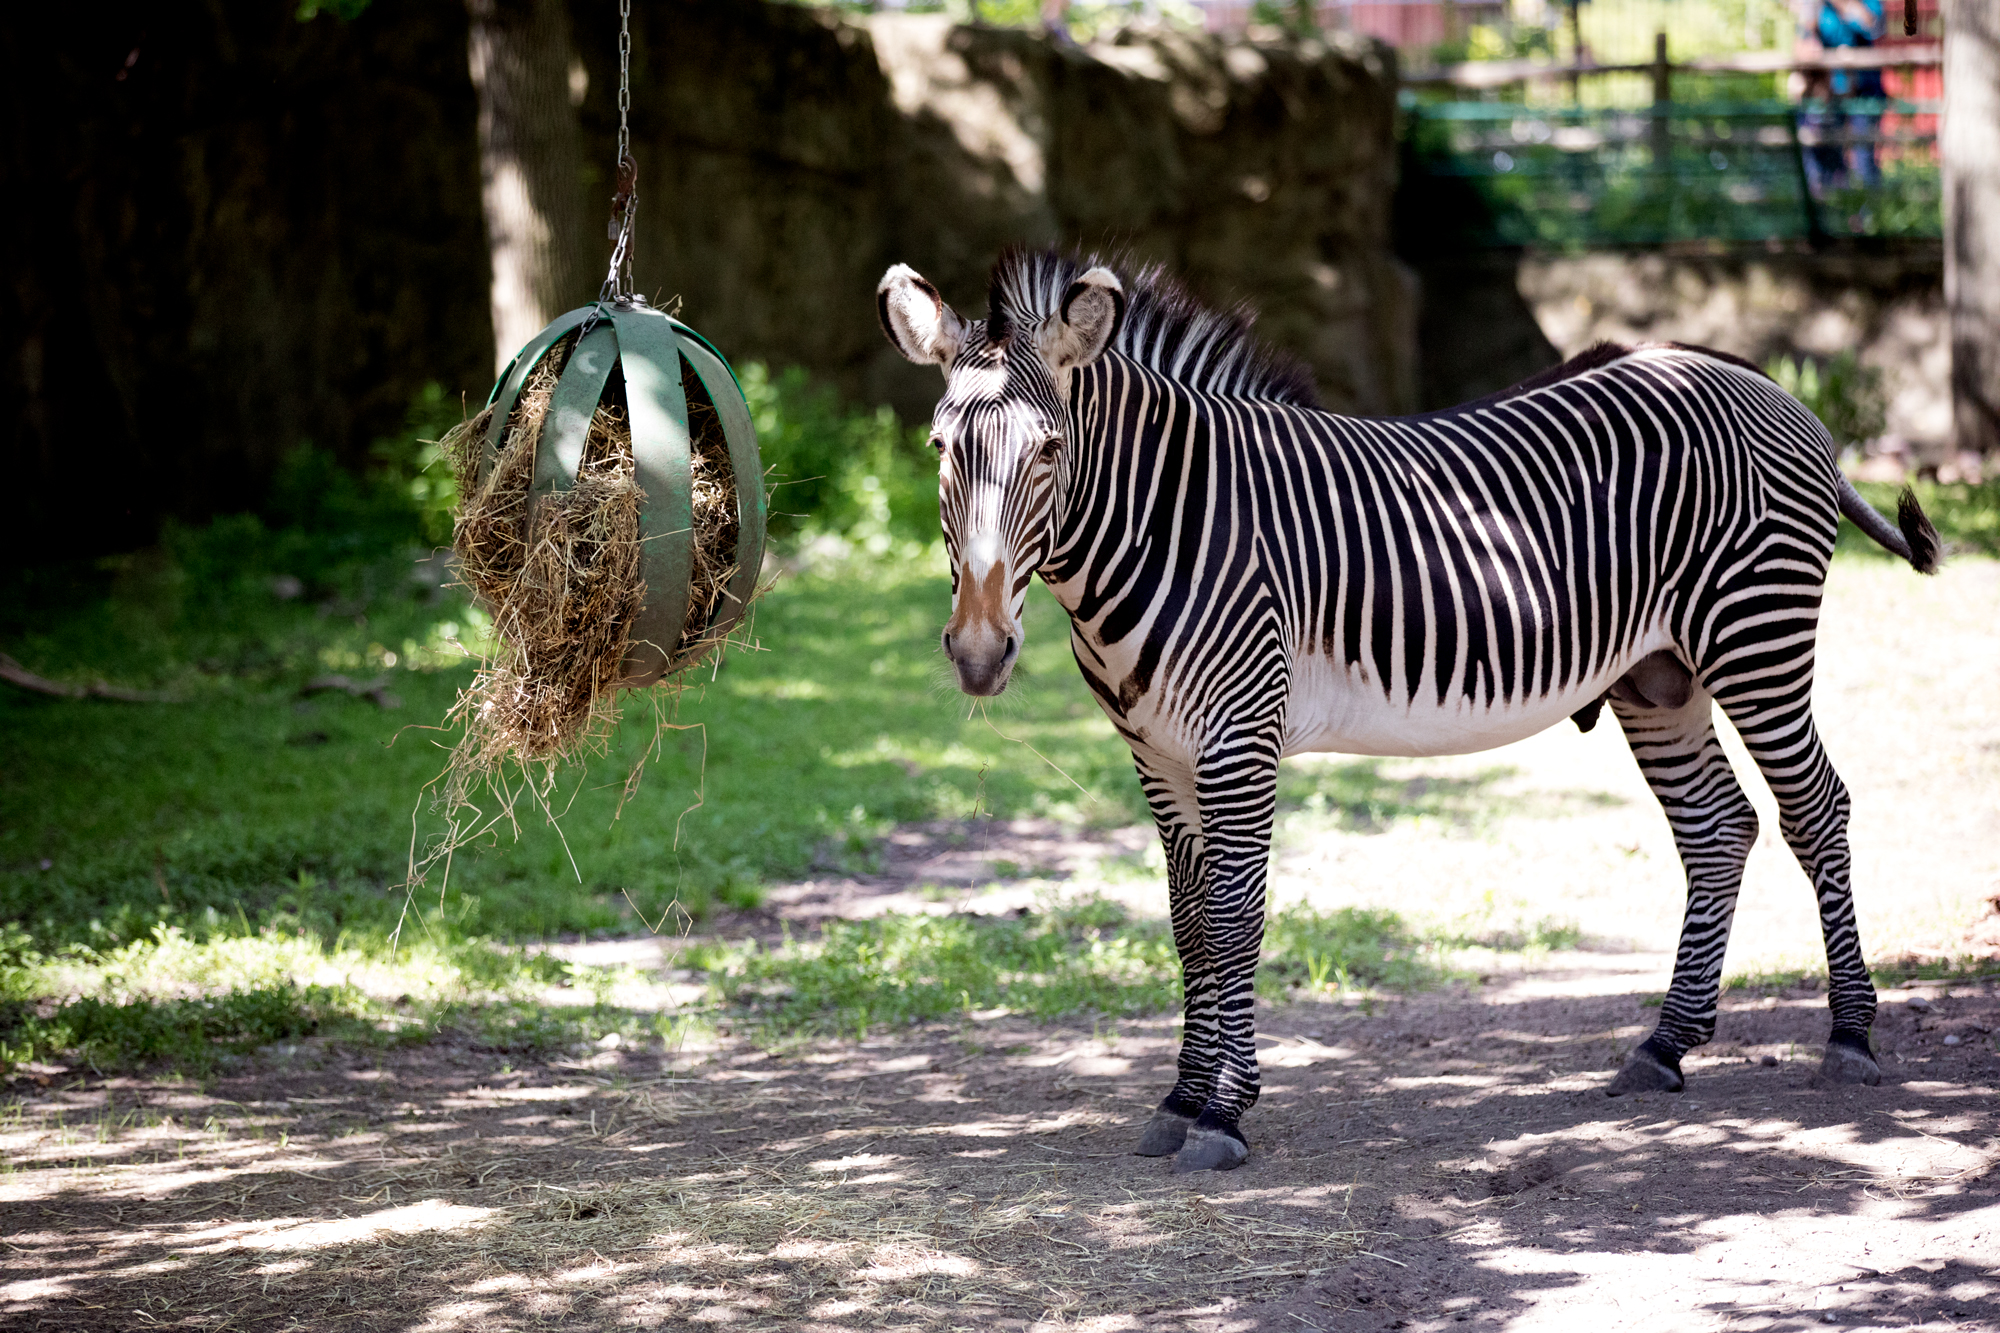 A zebra at the Lincoln Park Zoo on June 9, 2017. (Andrew Gill/WBEZ)